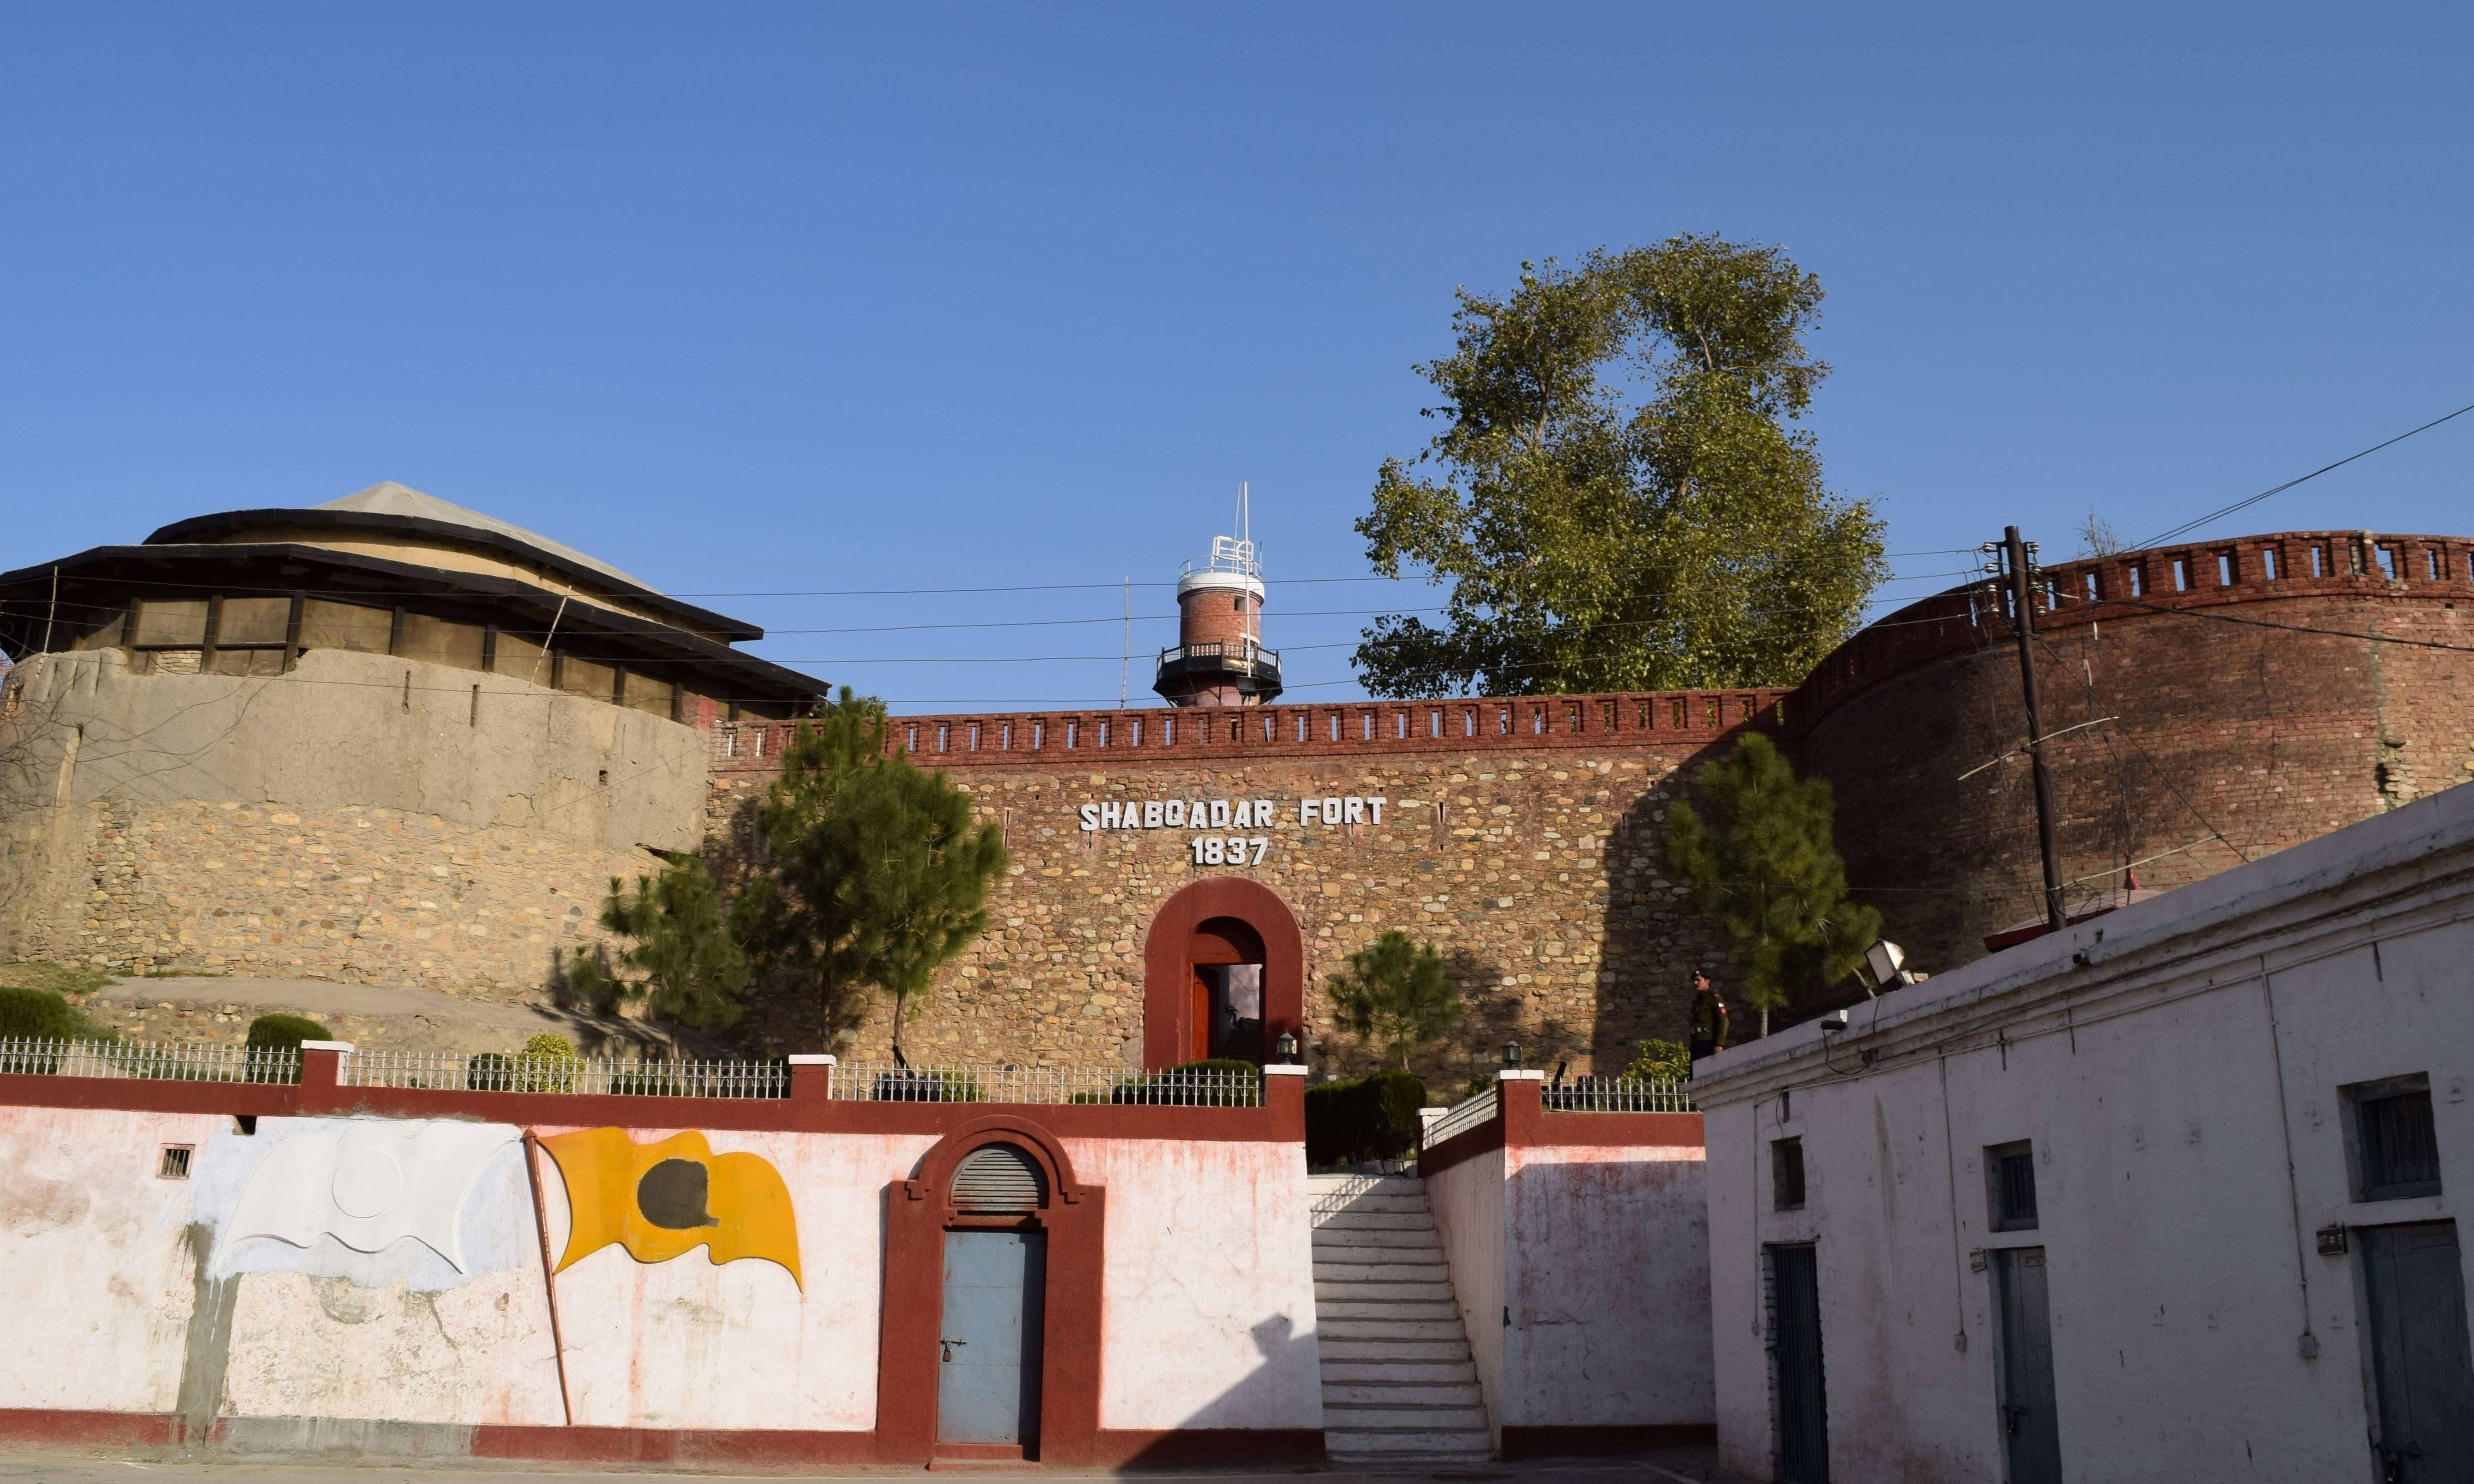 The weeping willows of Shabqadar and other marvels at this magnificent fort